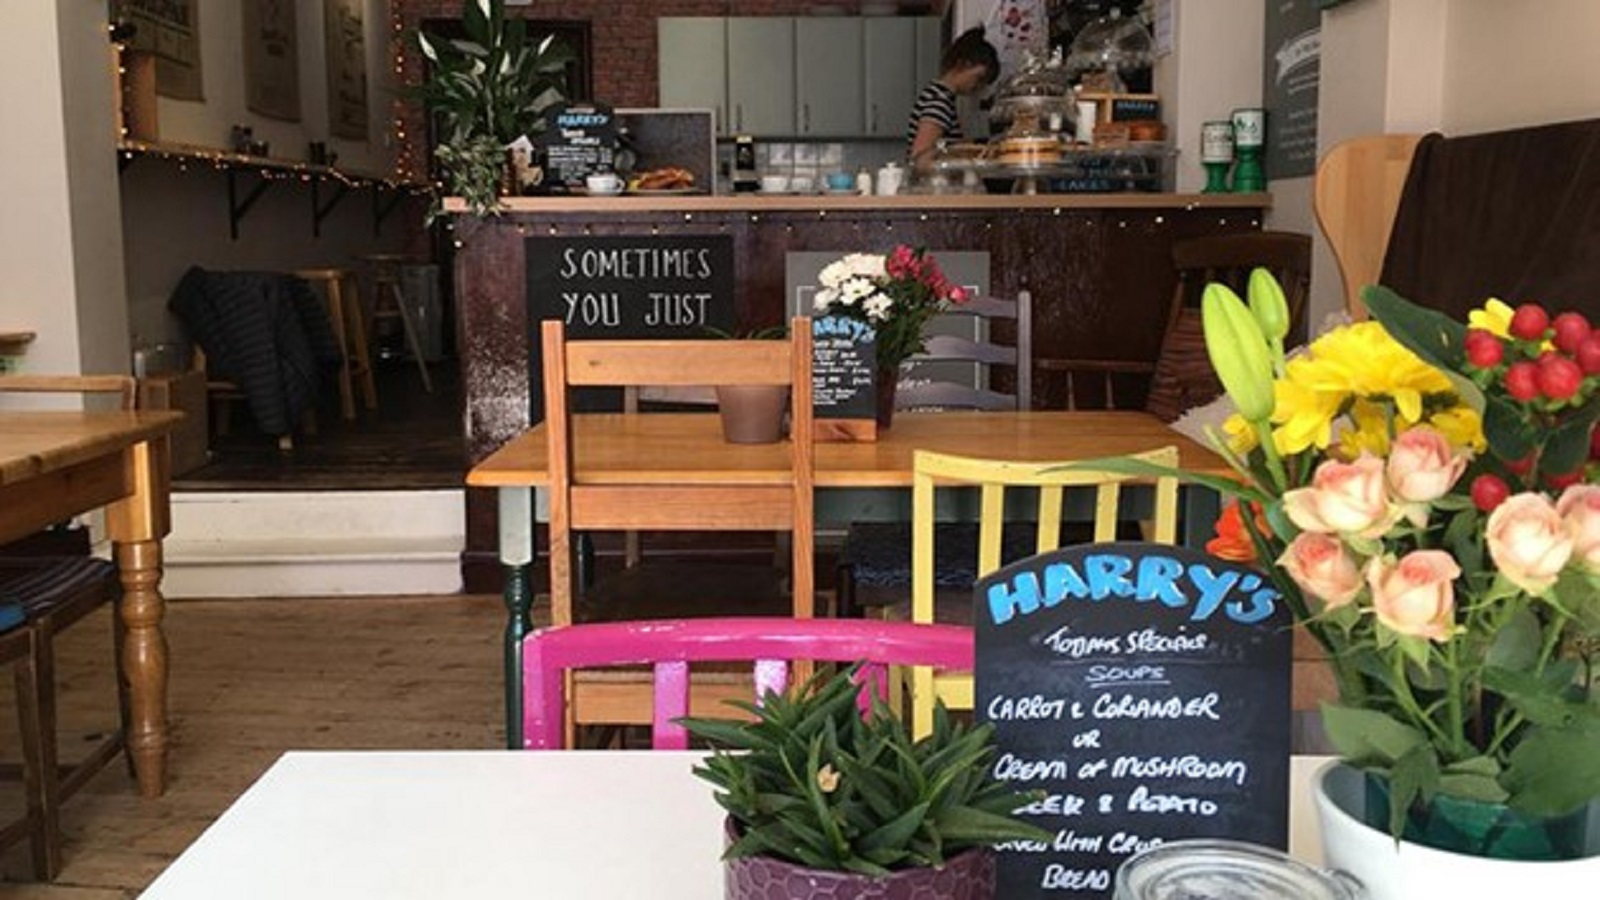 Harry's Coffee House